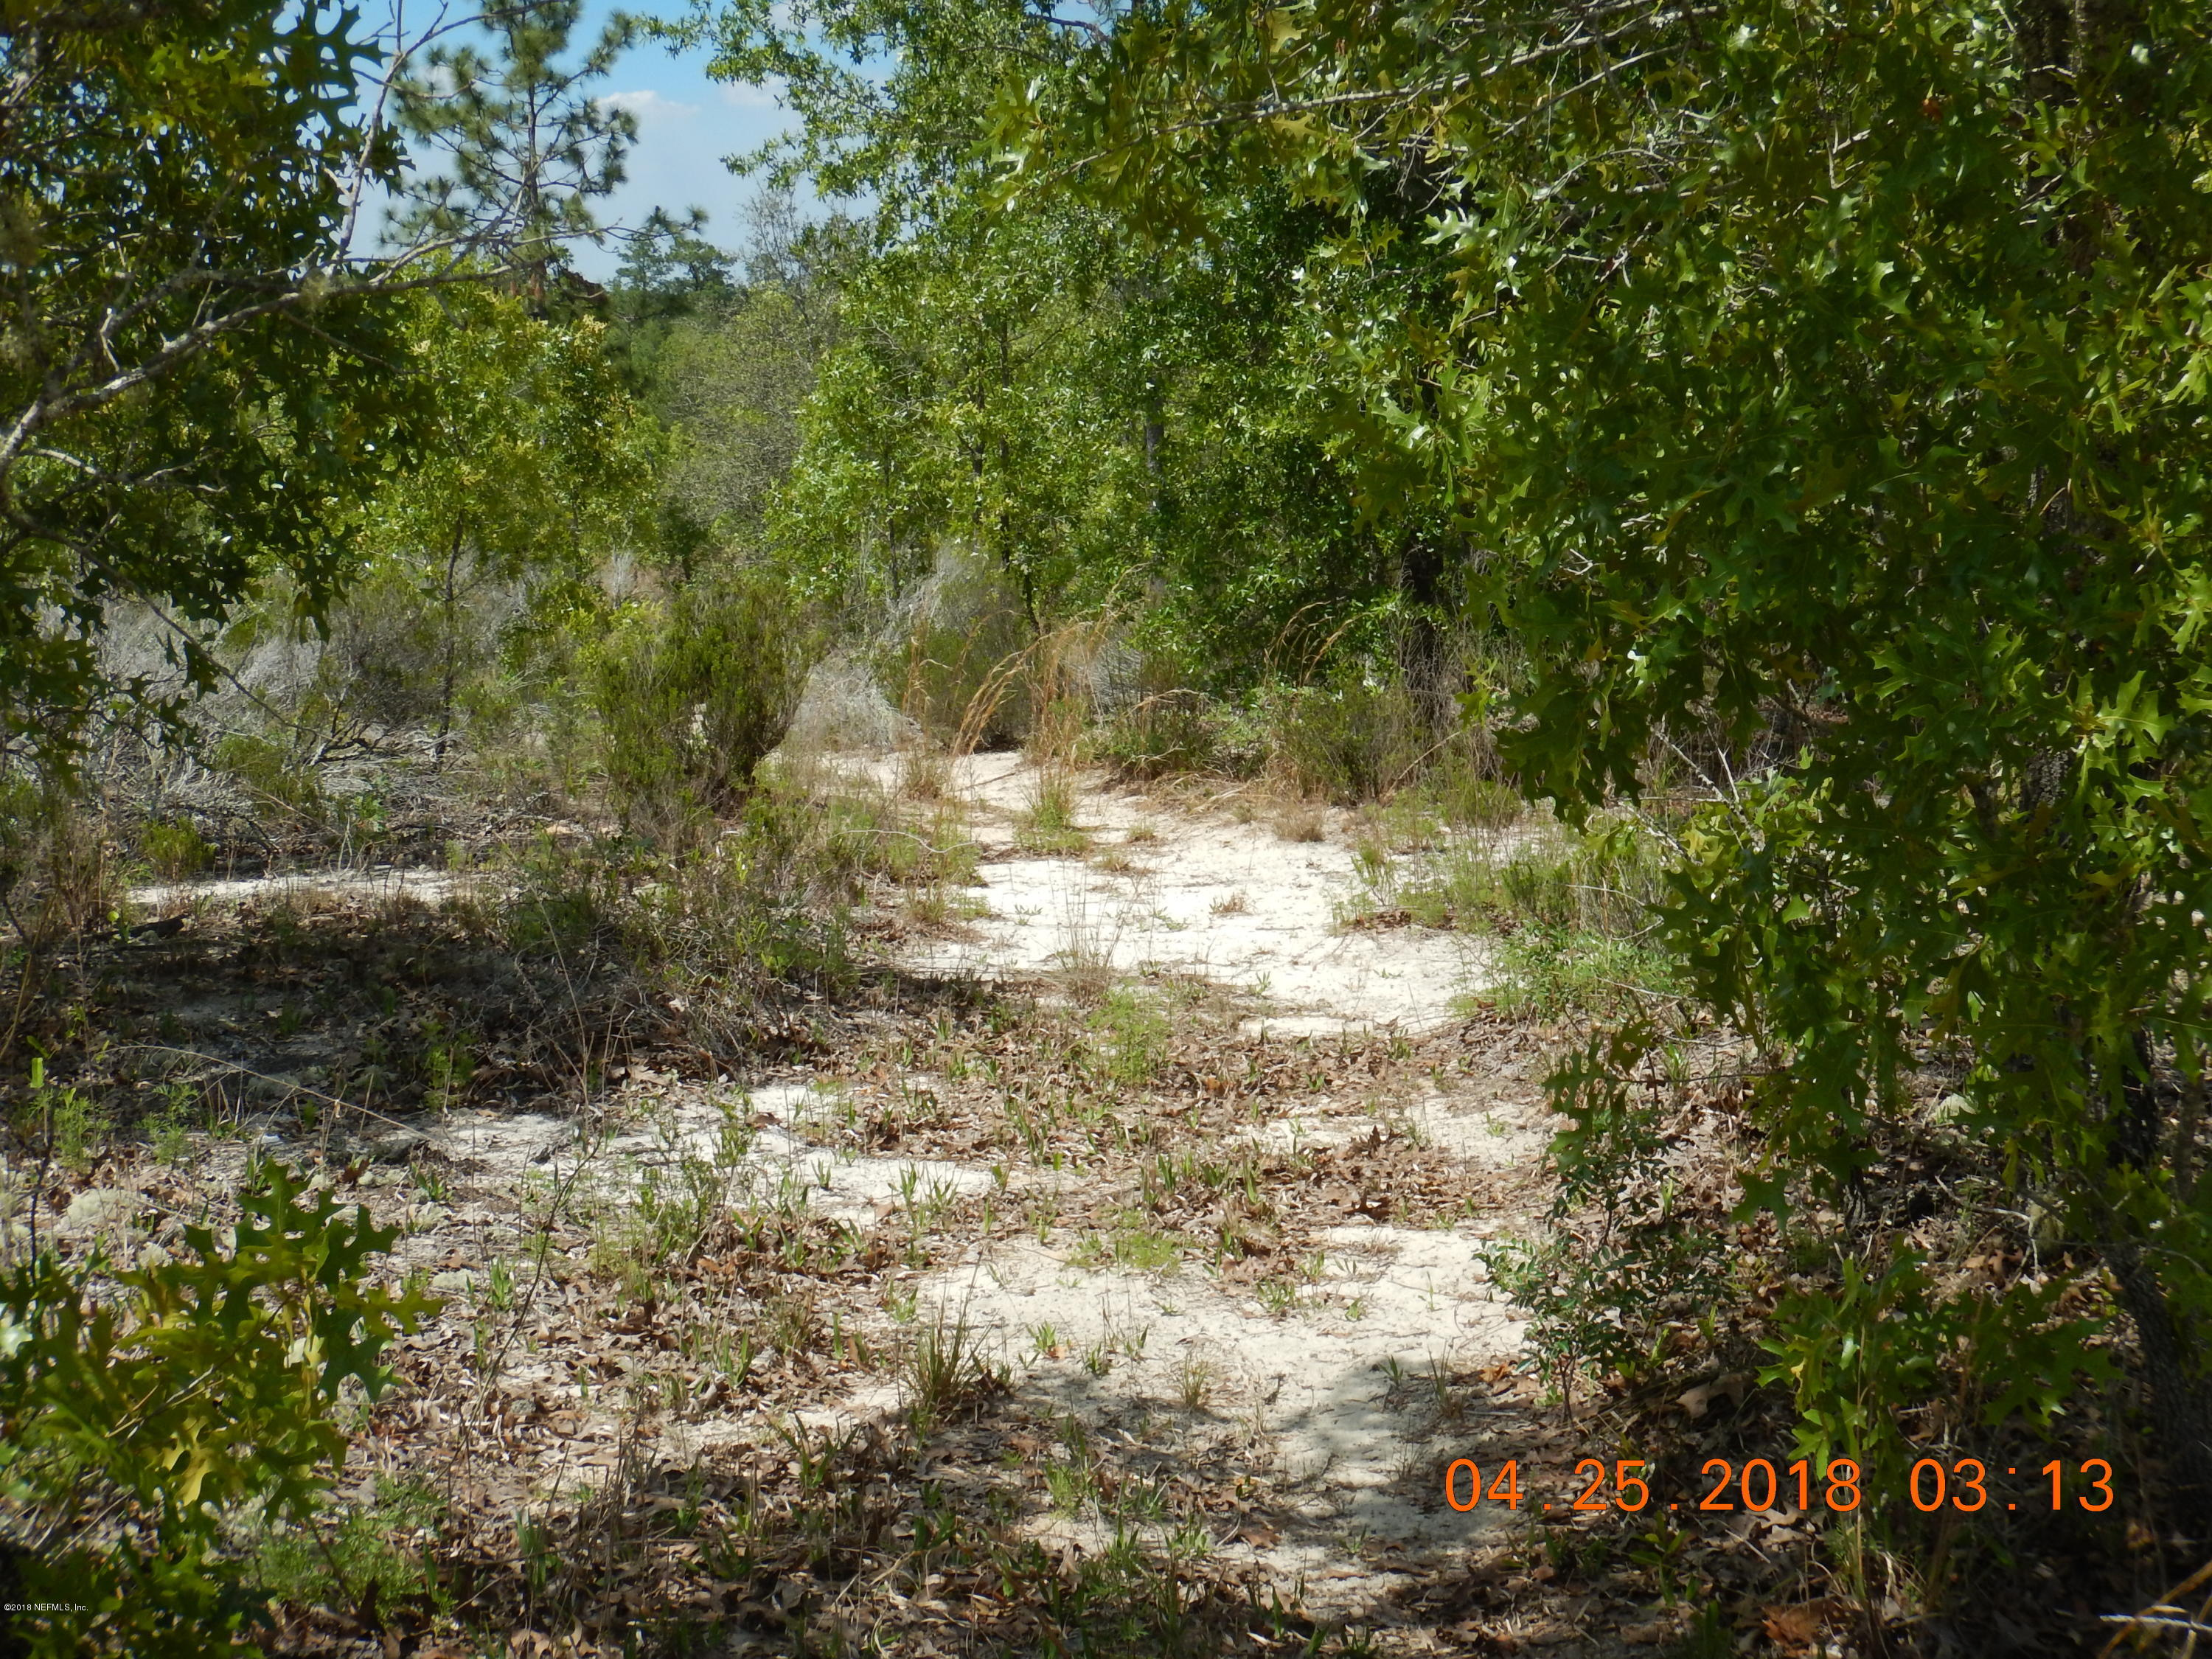 0 MAIN, INTERLACHEN, FLORIDA 32148, ,Vacant land,For sale,MAIN,933871